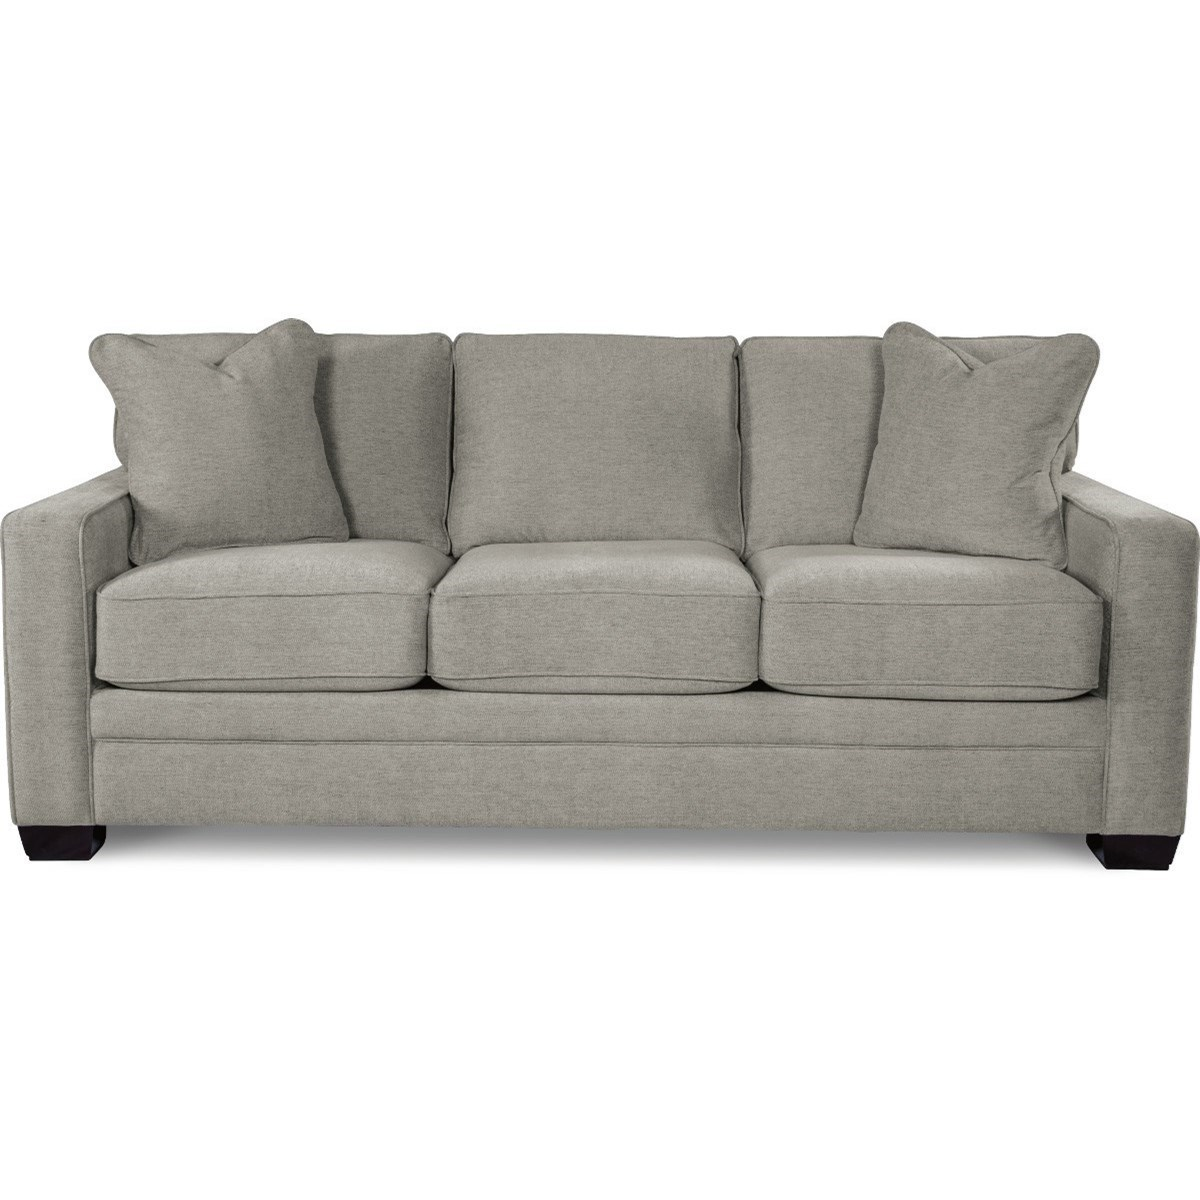 La Z Boy Sofa La-Z-Boy Meyer Contemporary Sofa with Premier ComfortCore Cushions